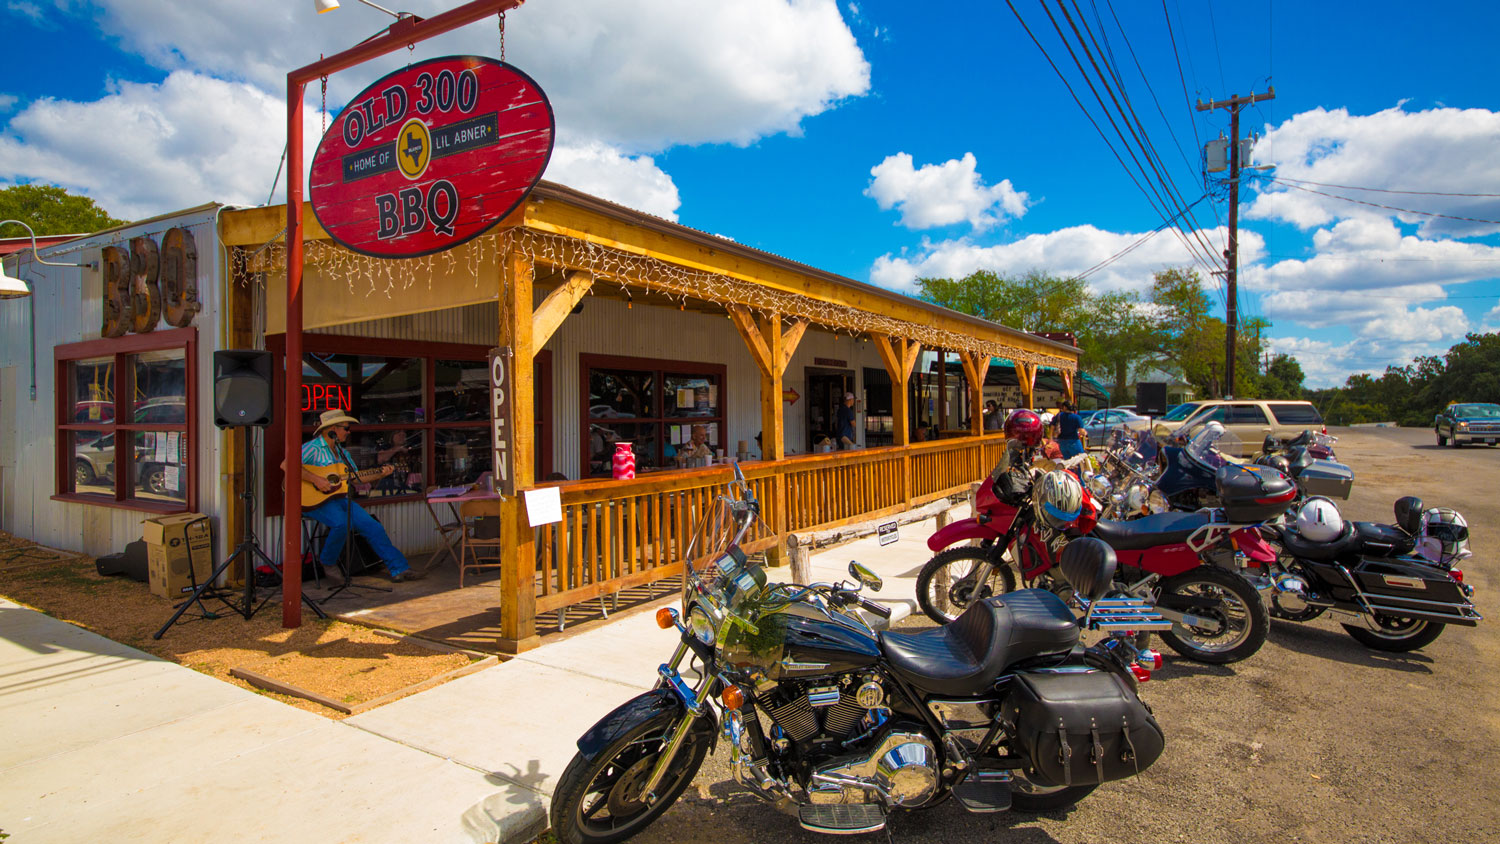 An exterior view of Old 300 BBQ with motorcycles parked out front